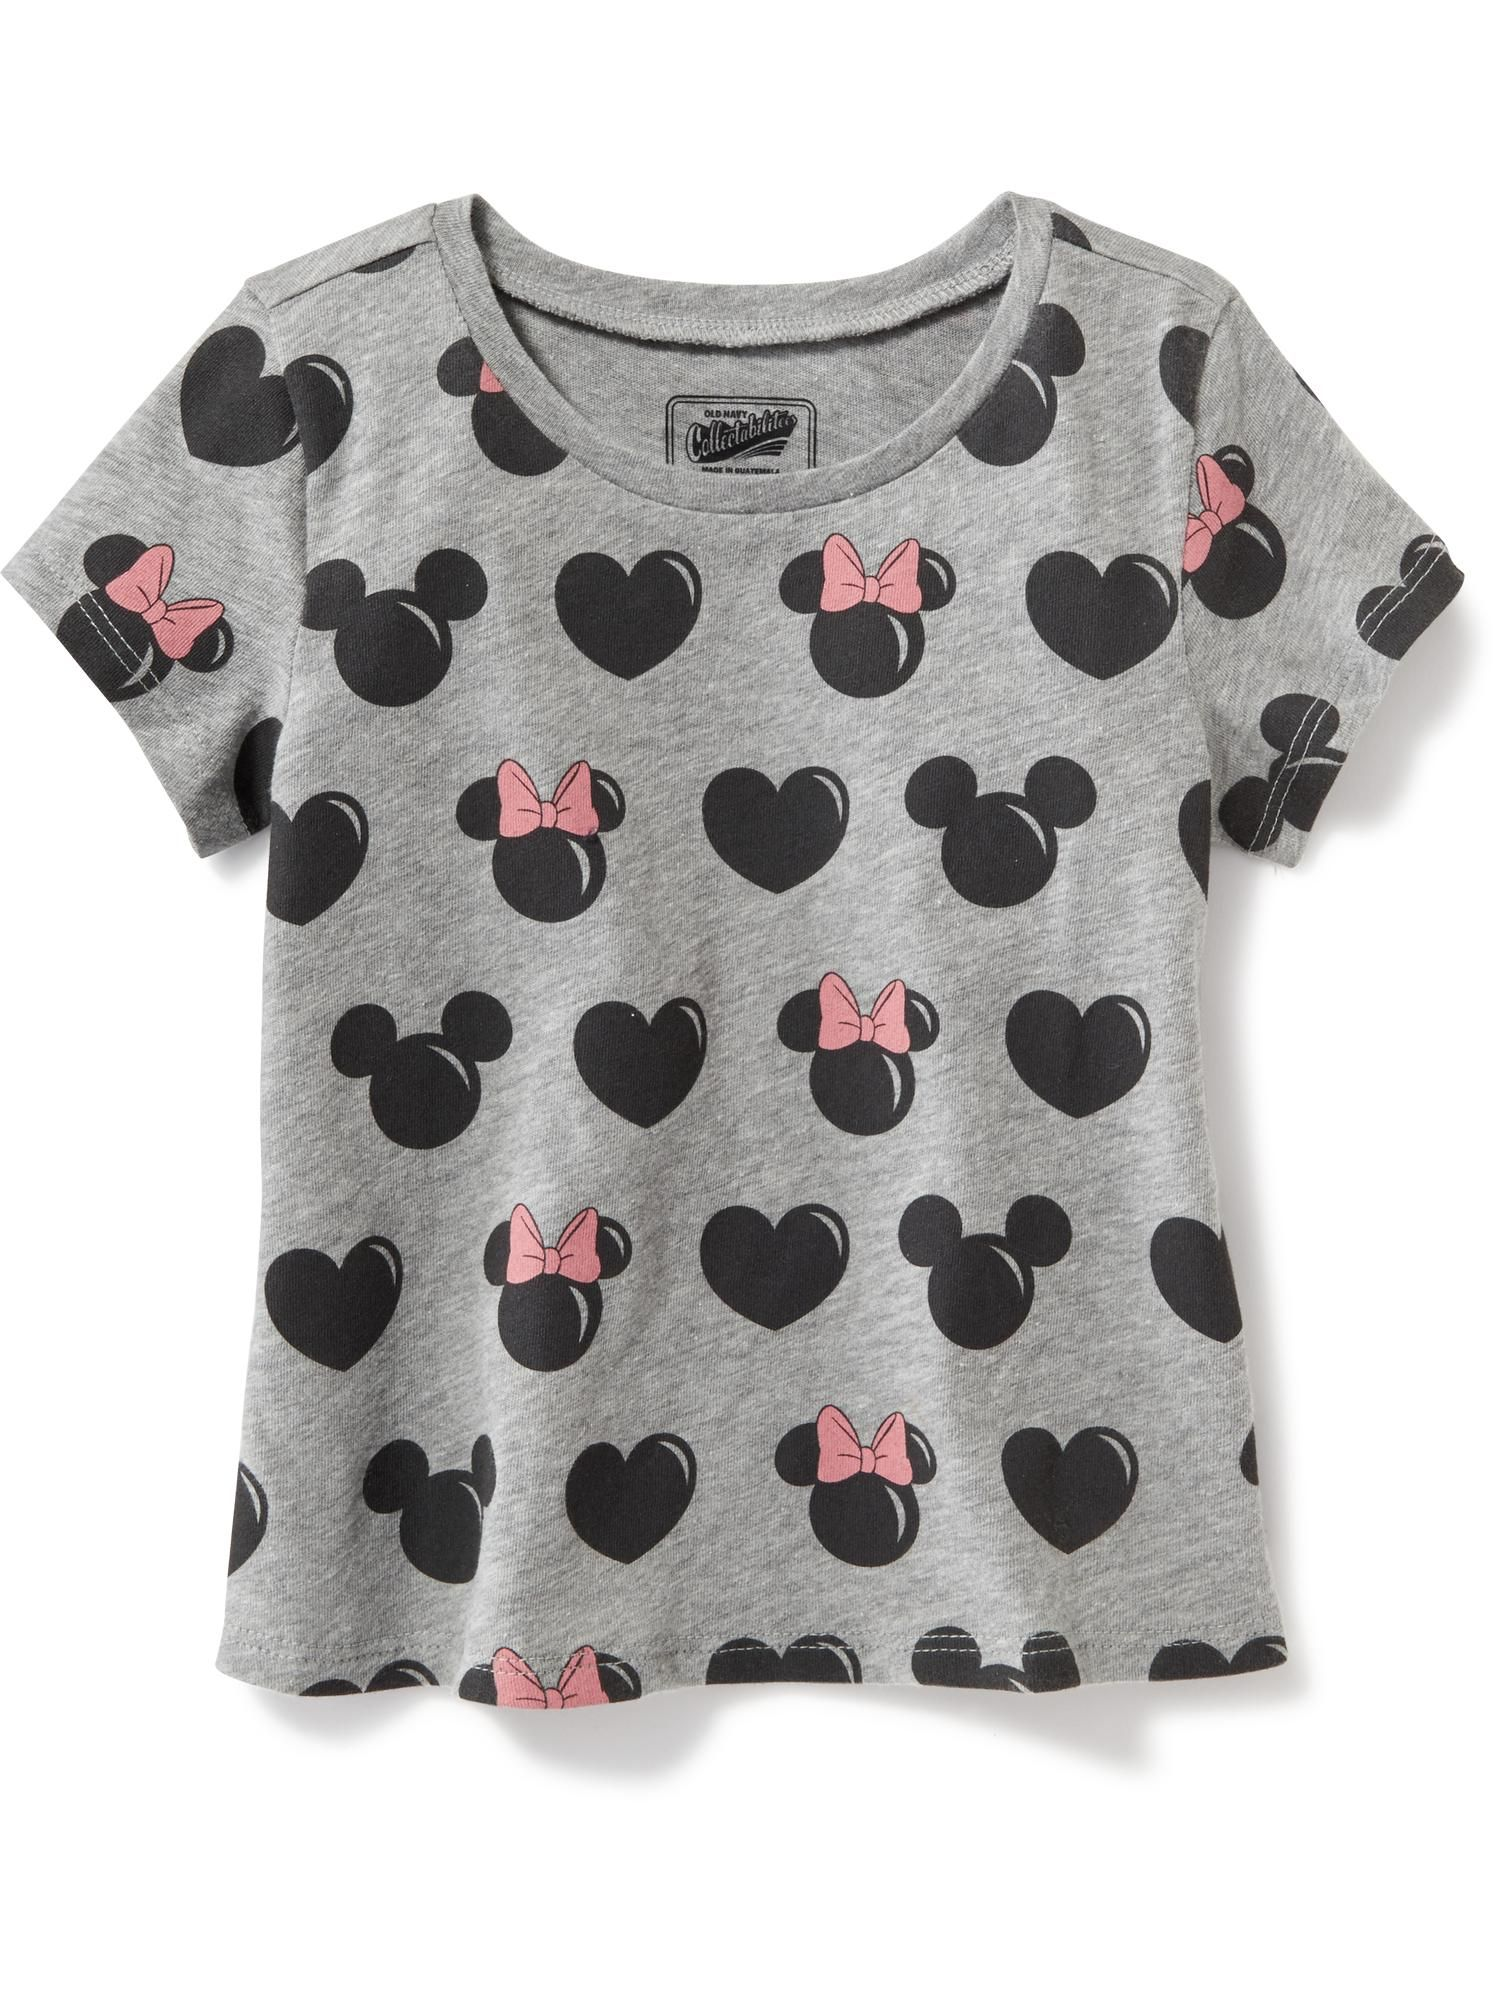 Disney© Minnie Mouse Graphic Tee for Toddler Old Navy